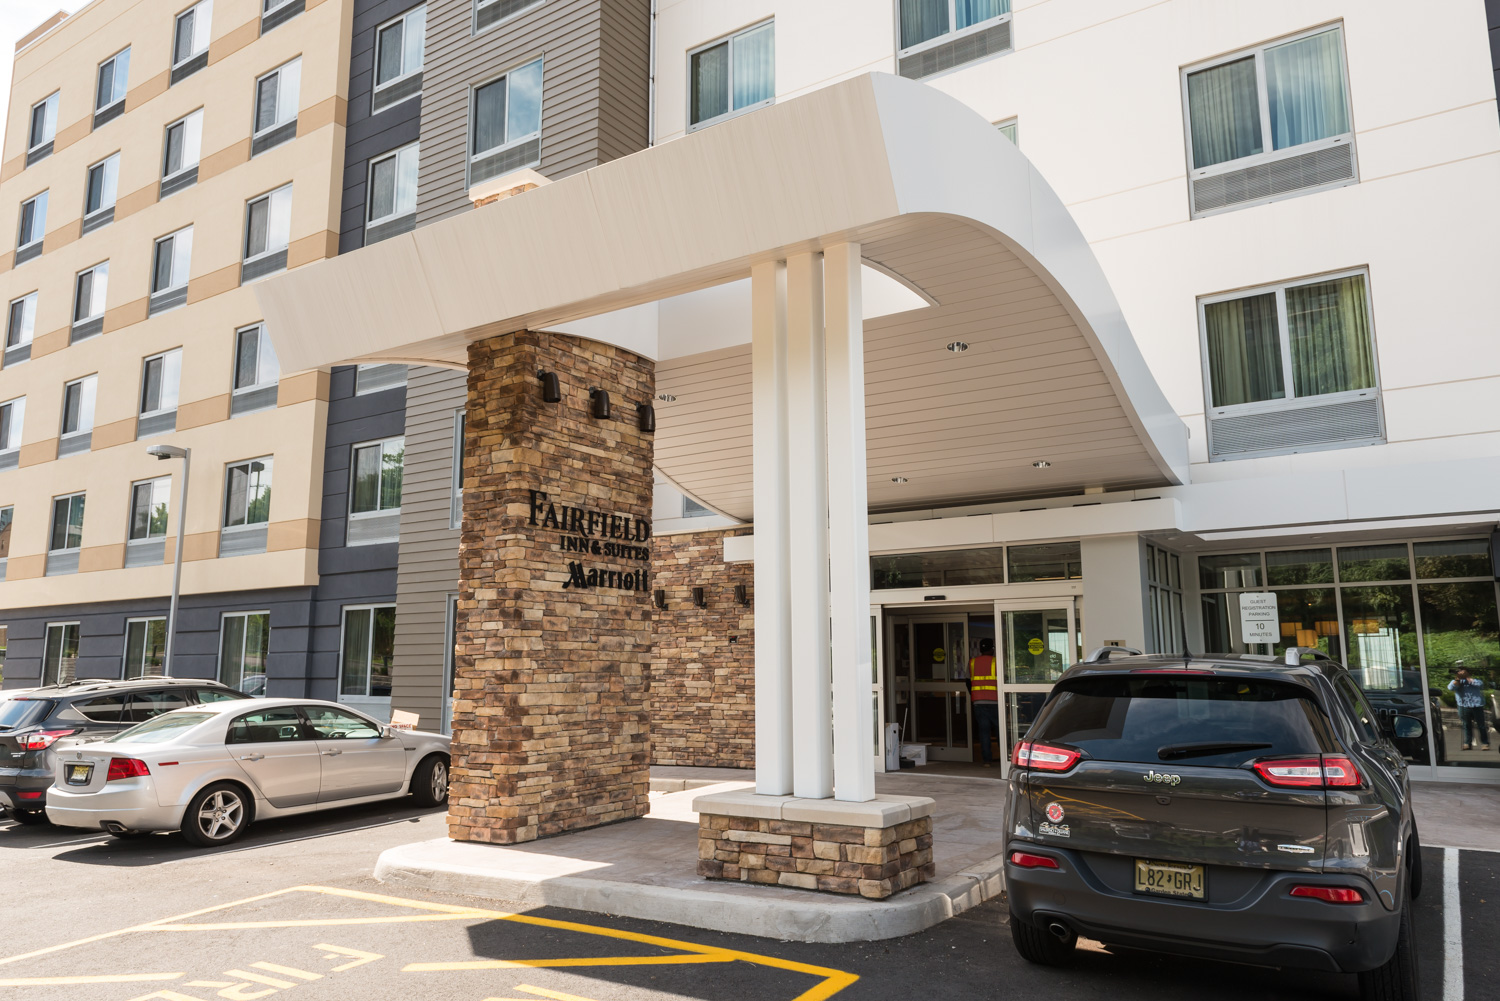 62-Fairfield Inn - North Bergen.jpg